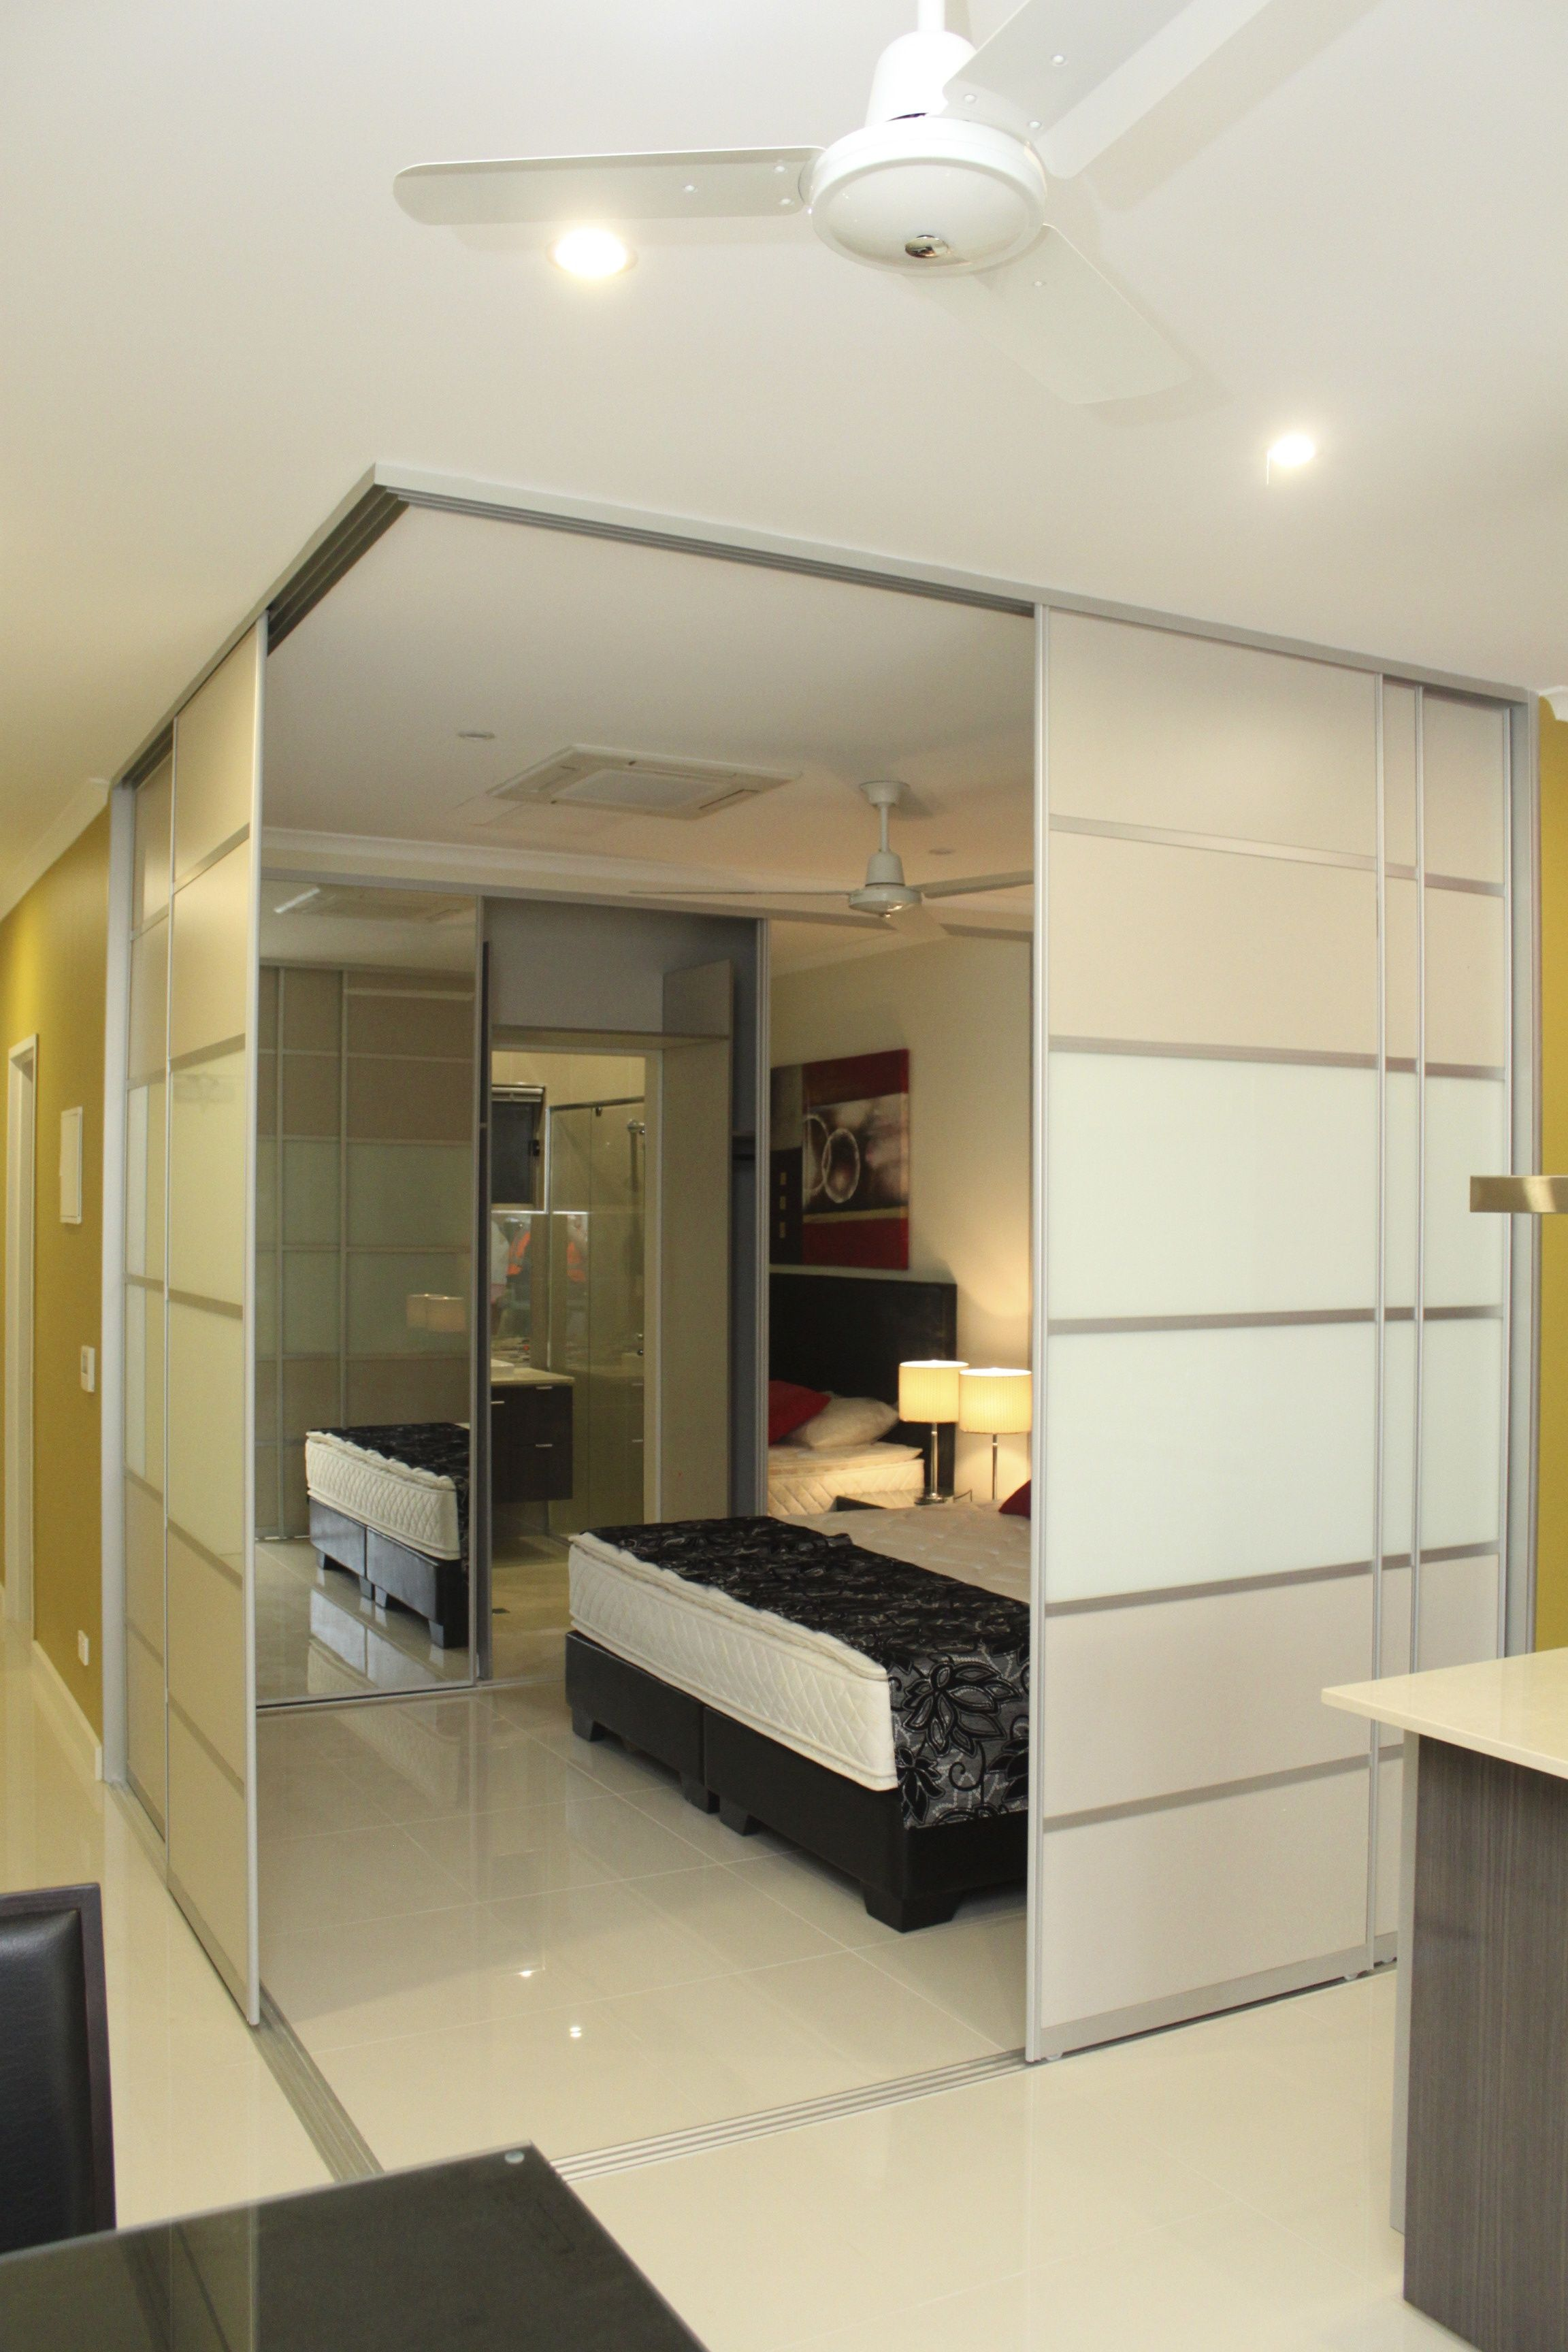 Our Sliding Doors Are Being Used As Wall Dividers Combining White Glass With Beige Panels House Styles Sliding Wardrobe Doors Home